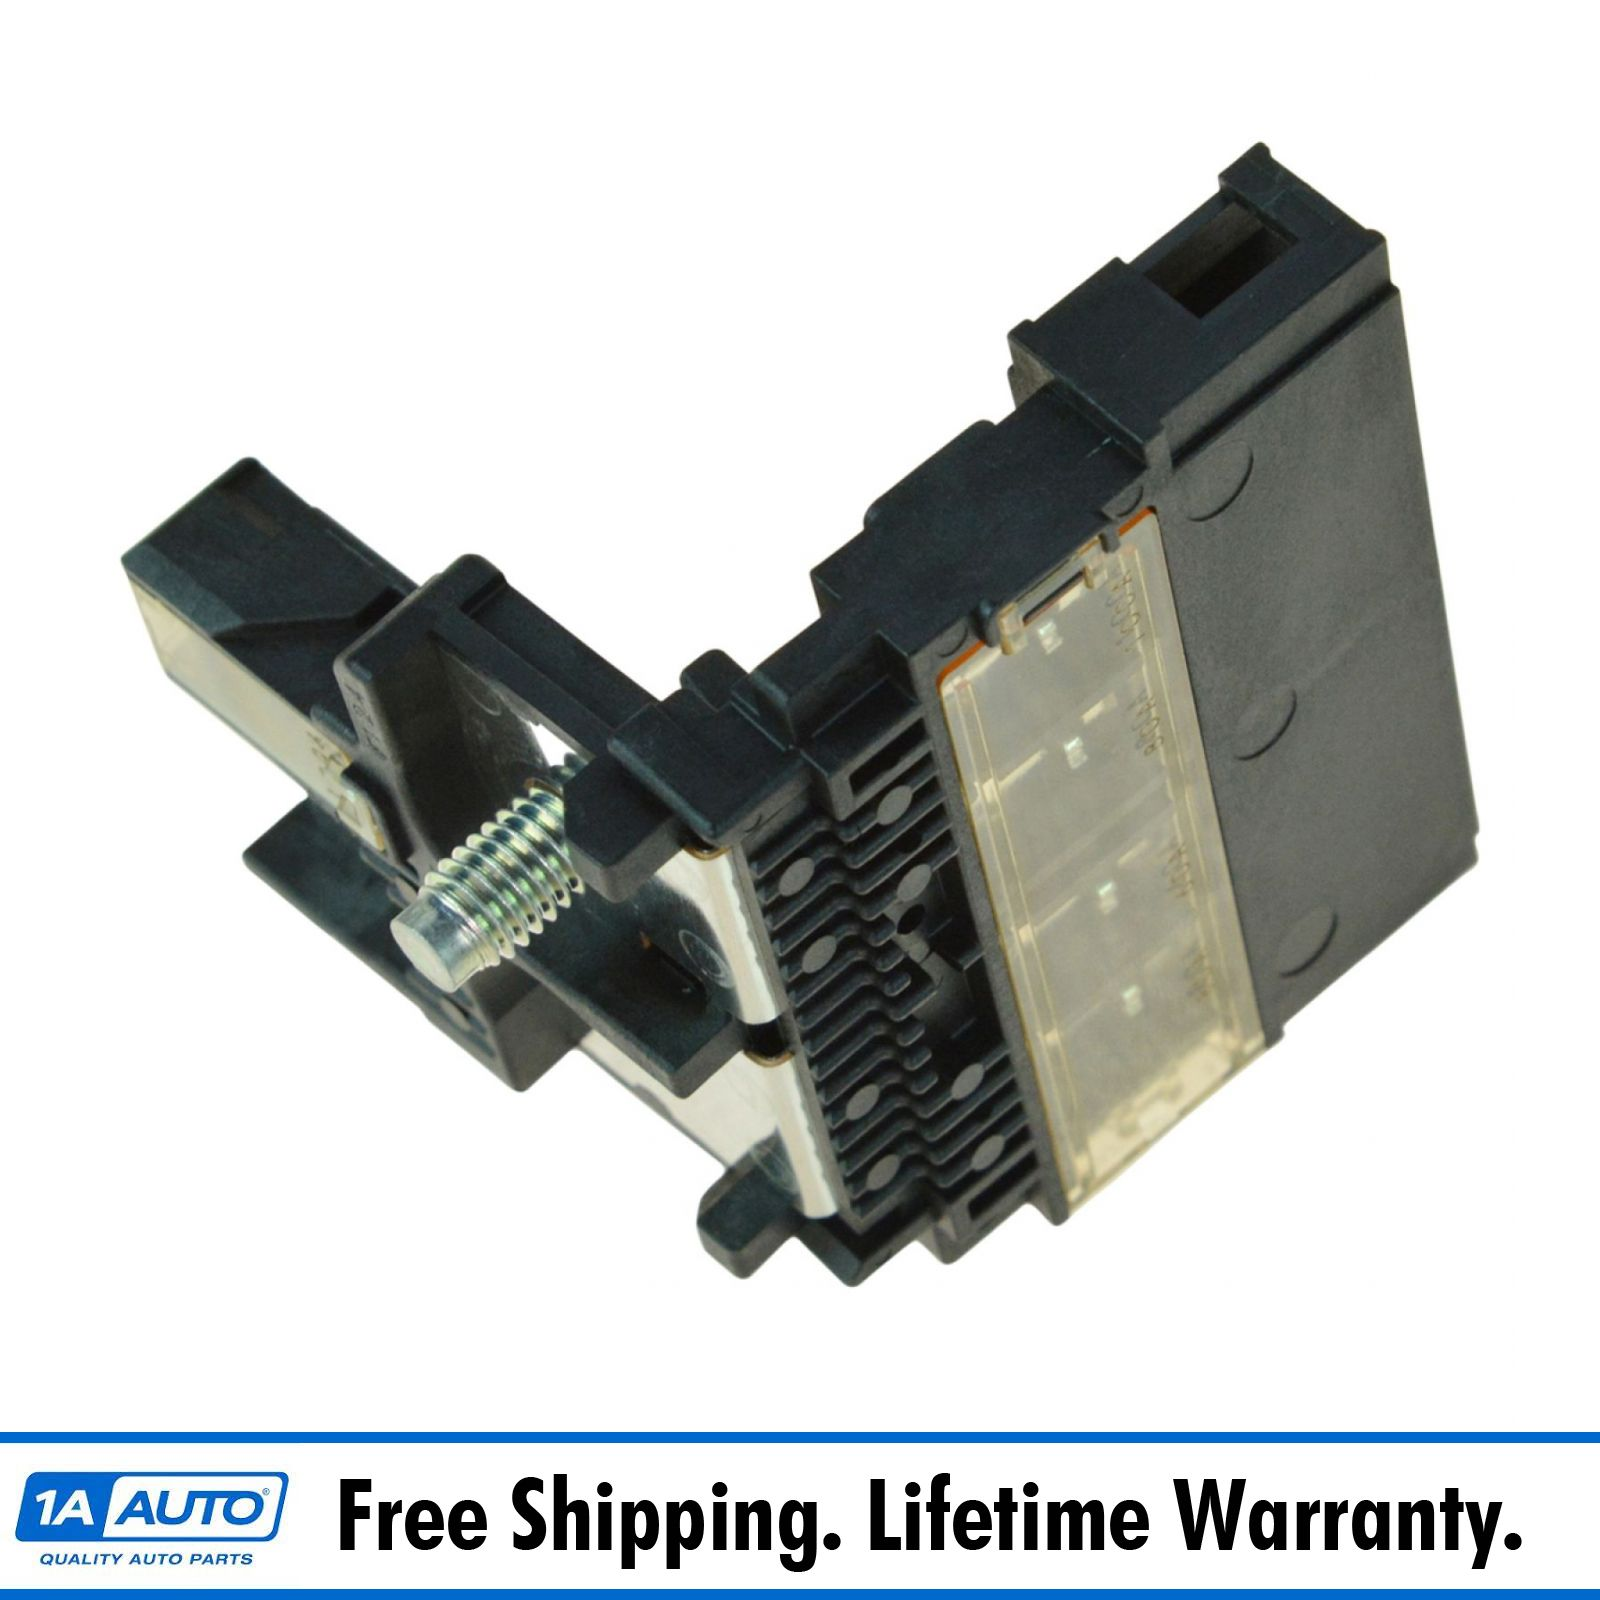 hight resolution of oem 24380 79912 fuse block holder connector link for murano note nszmx00003 351406995597 06 maxima fuse